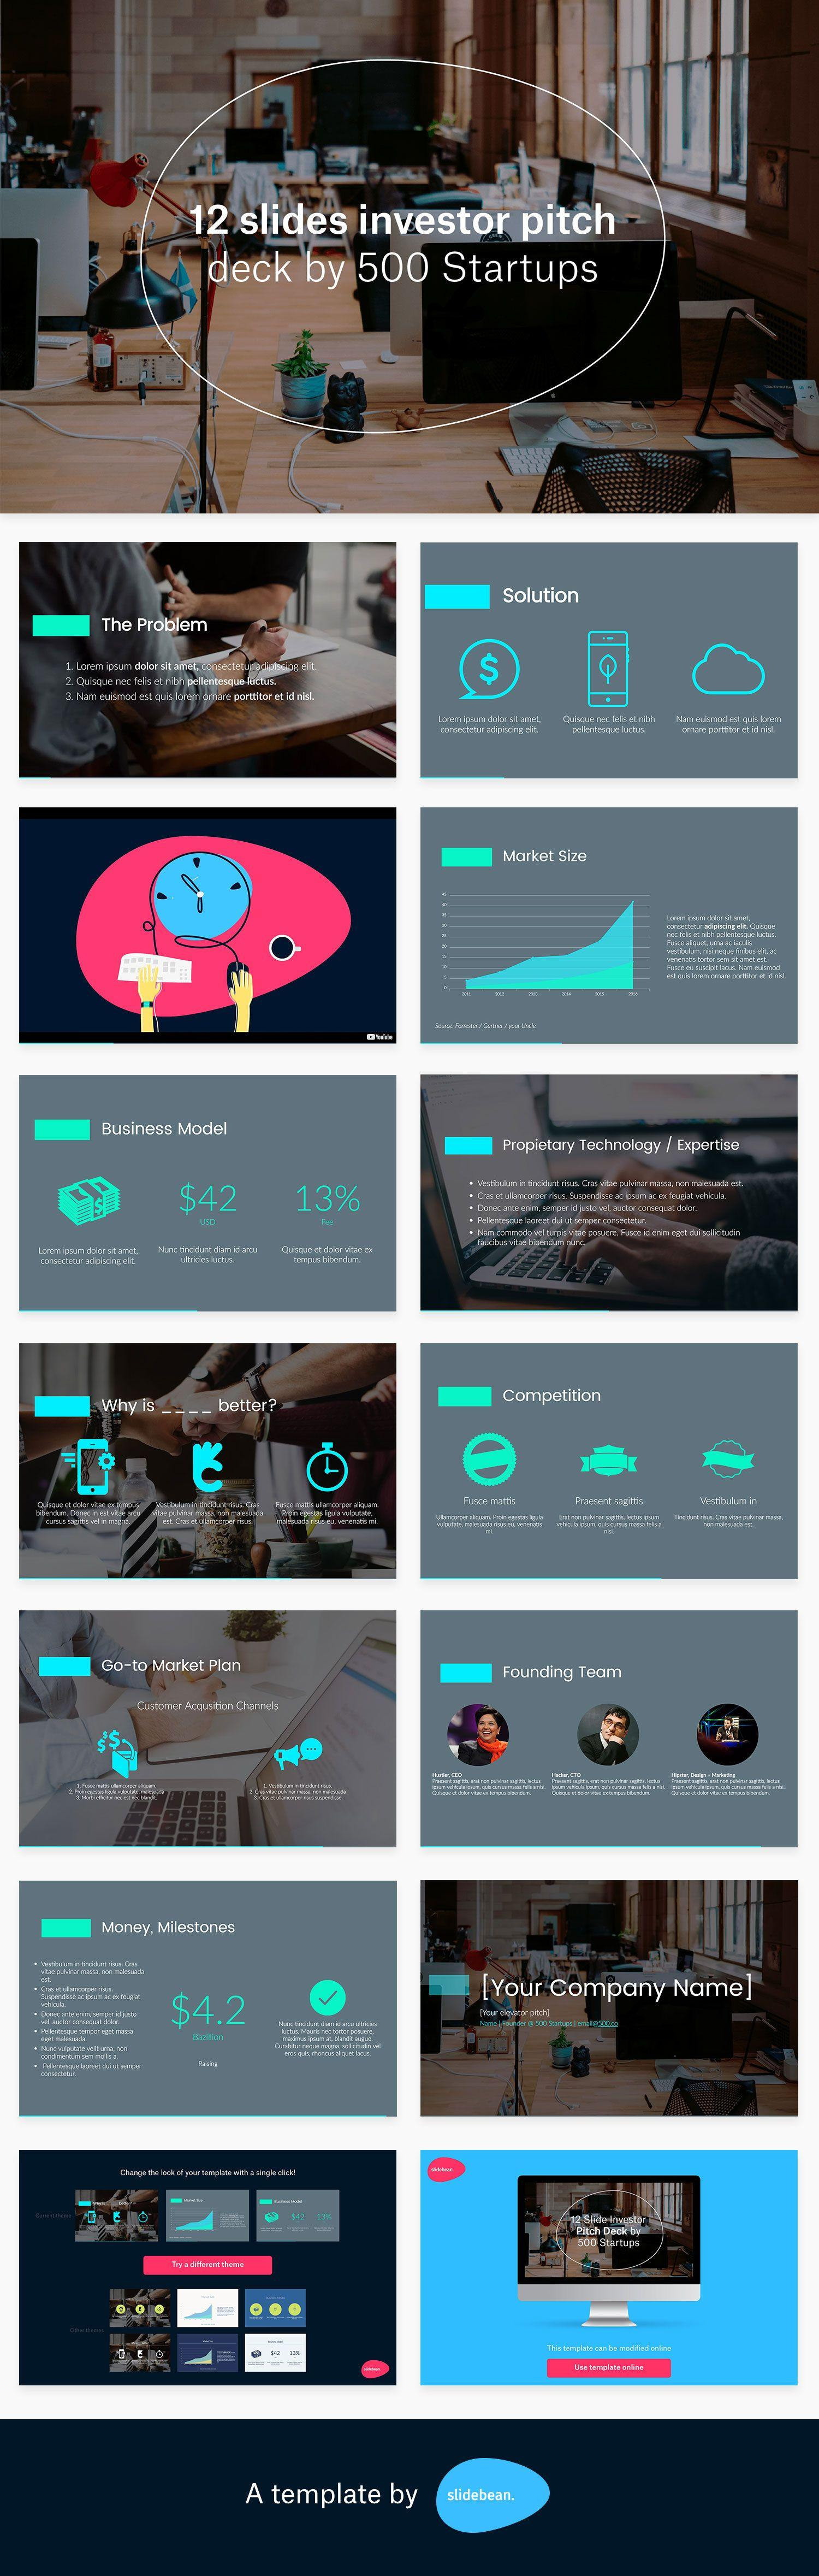 Highland Pitch Deck Powerpoint Template Free Download